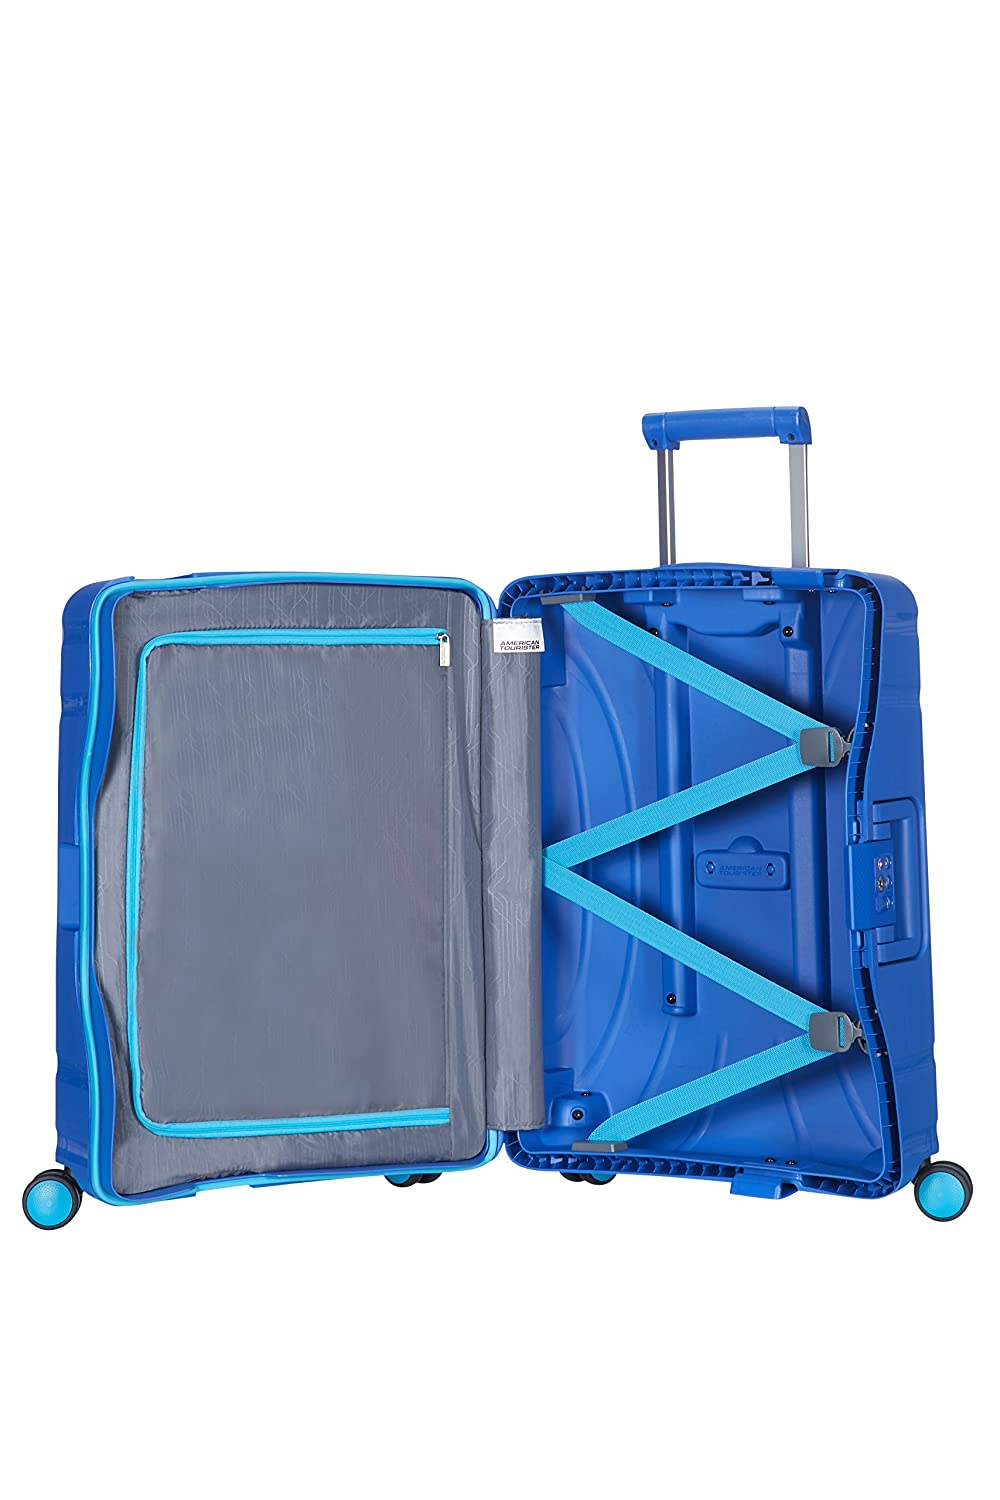 american tourister air force 1 spinner 55cm nz